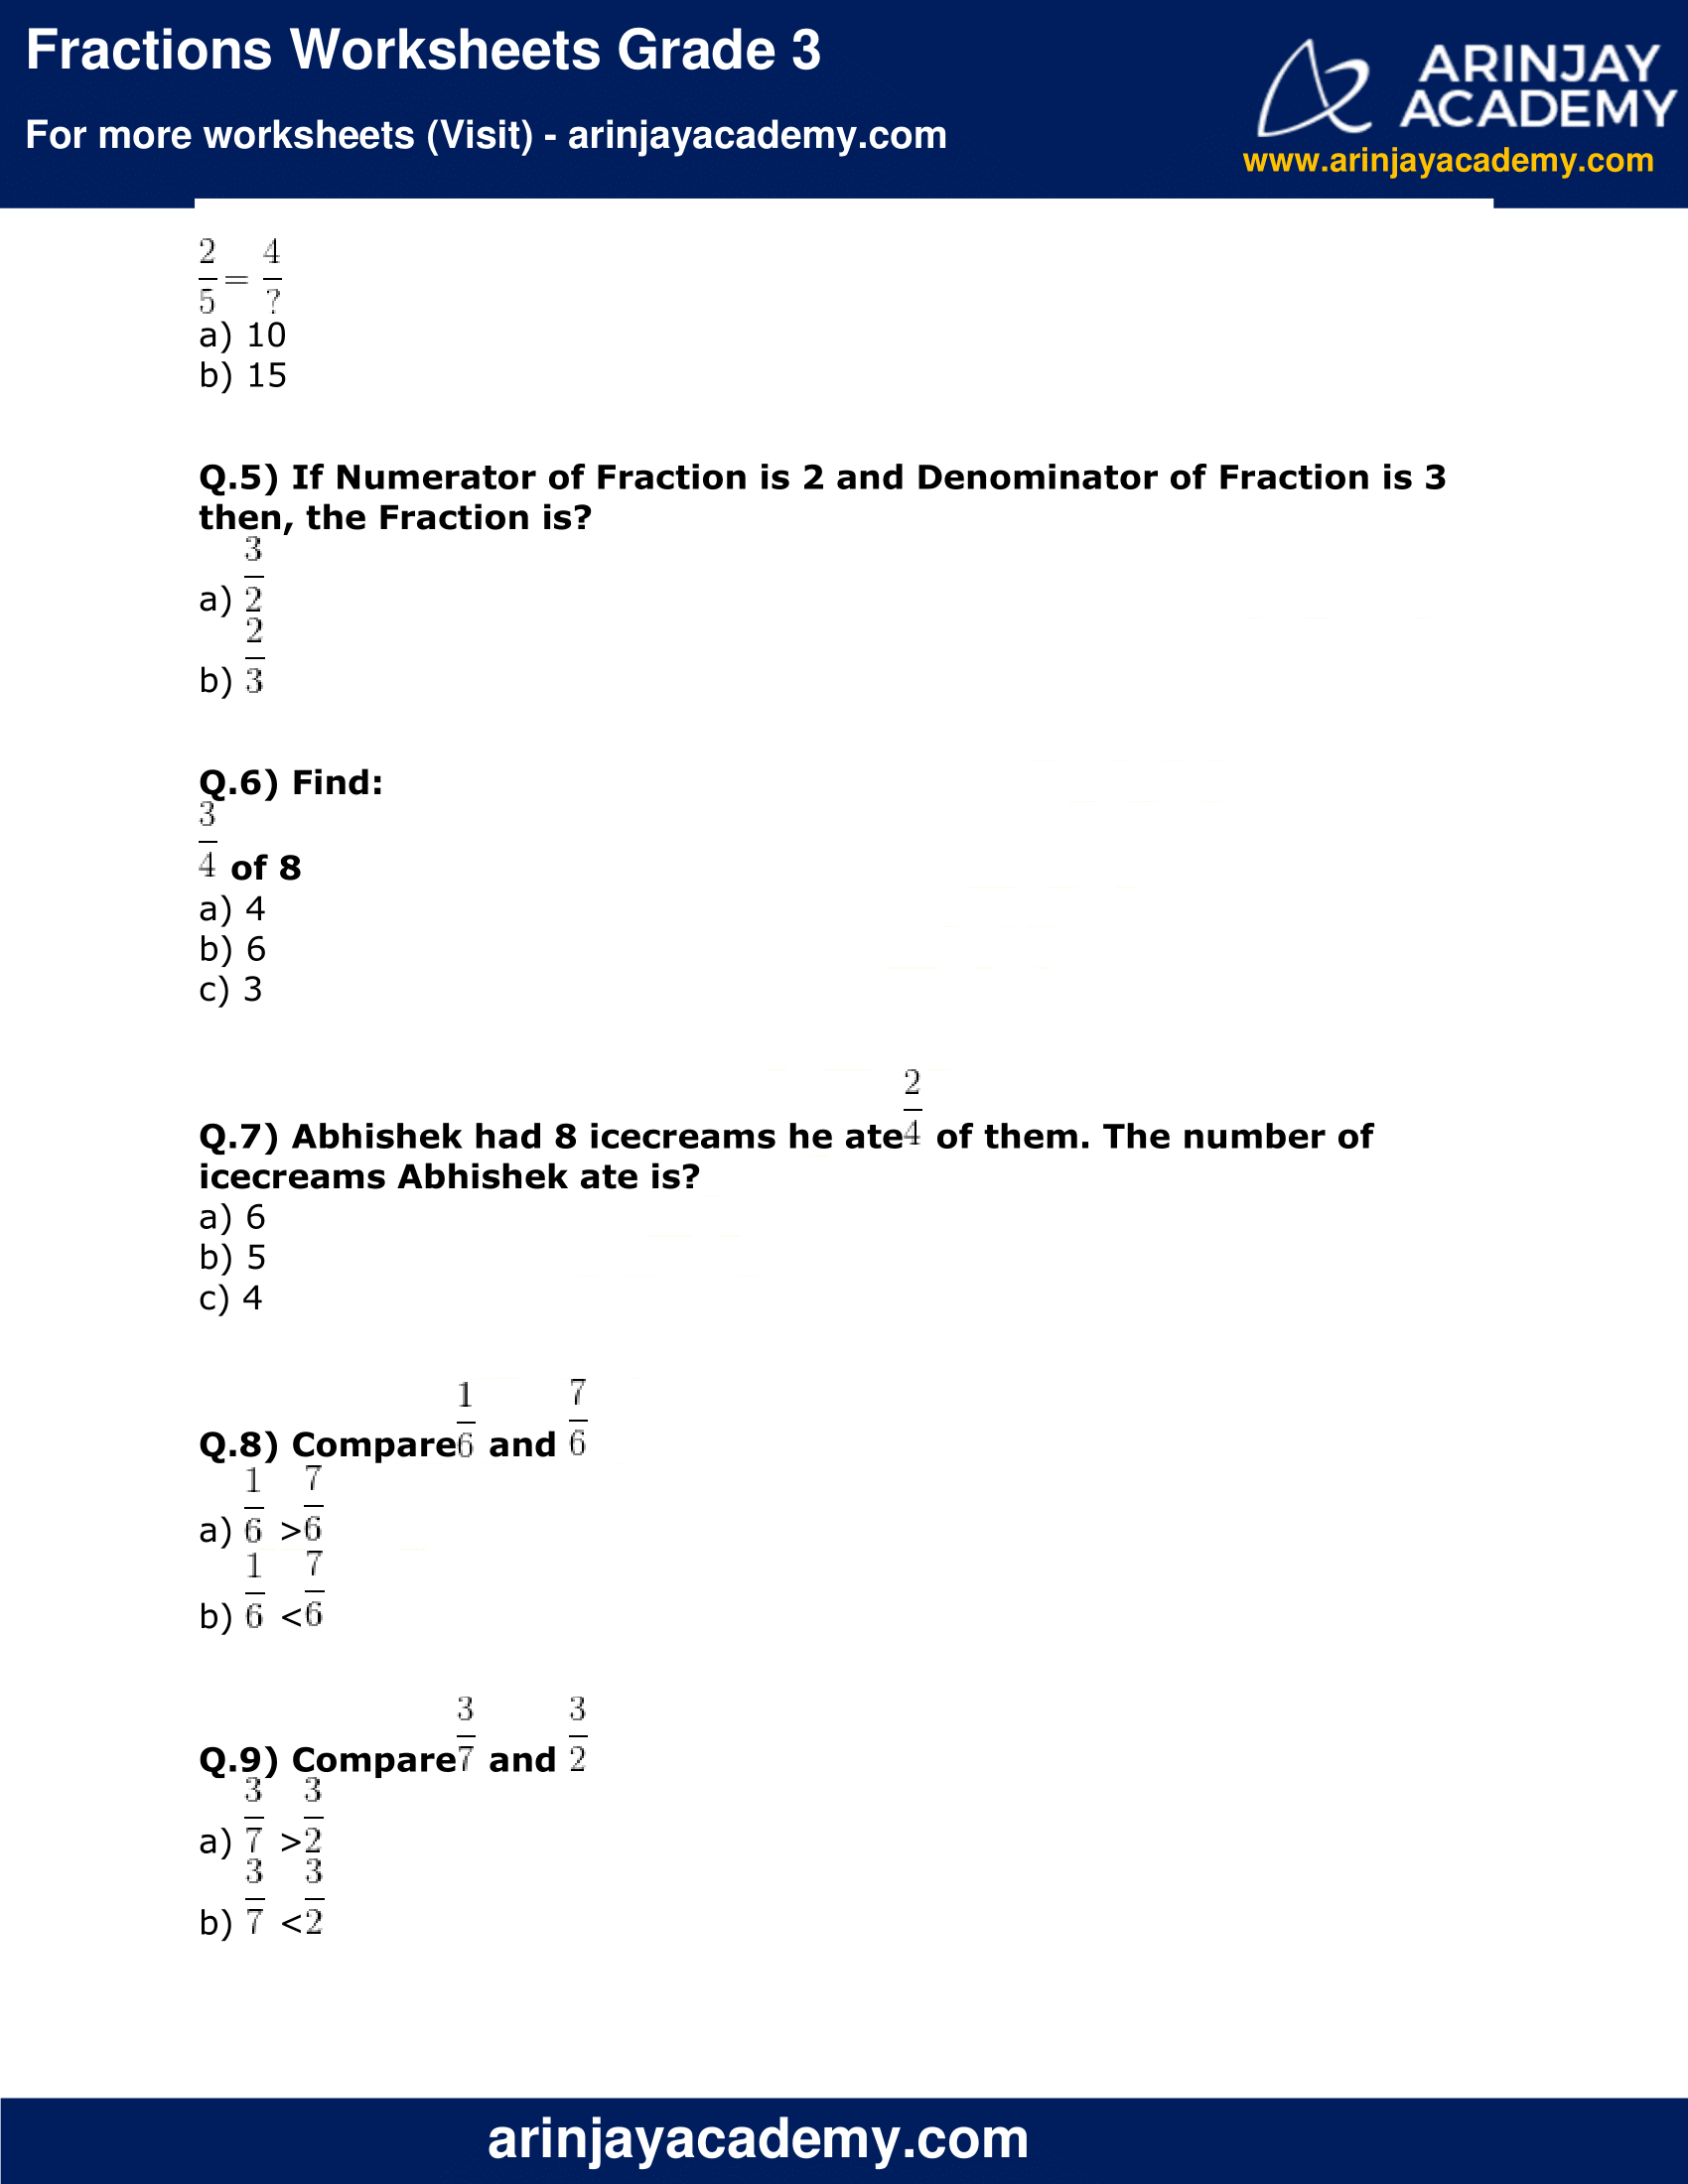 Fractions Worksheets Grade 3 Maths